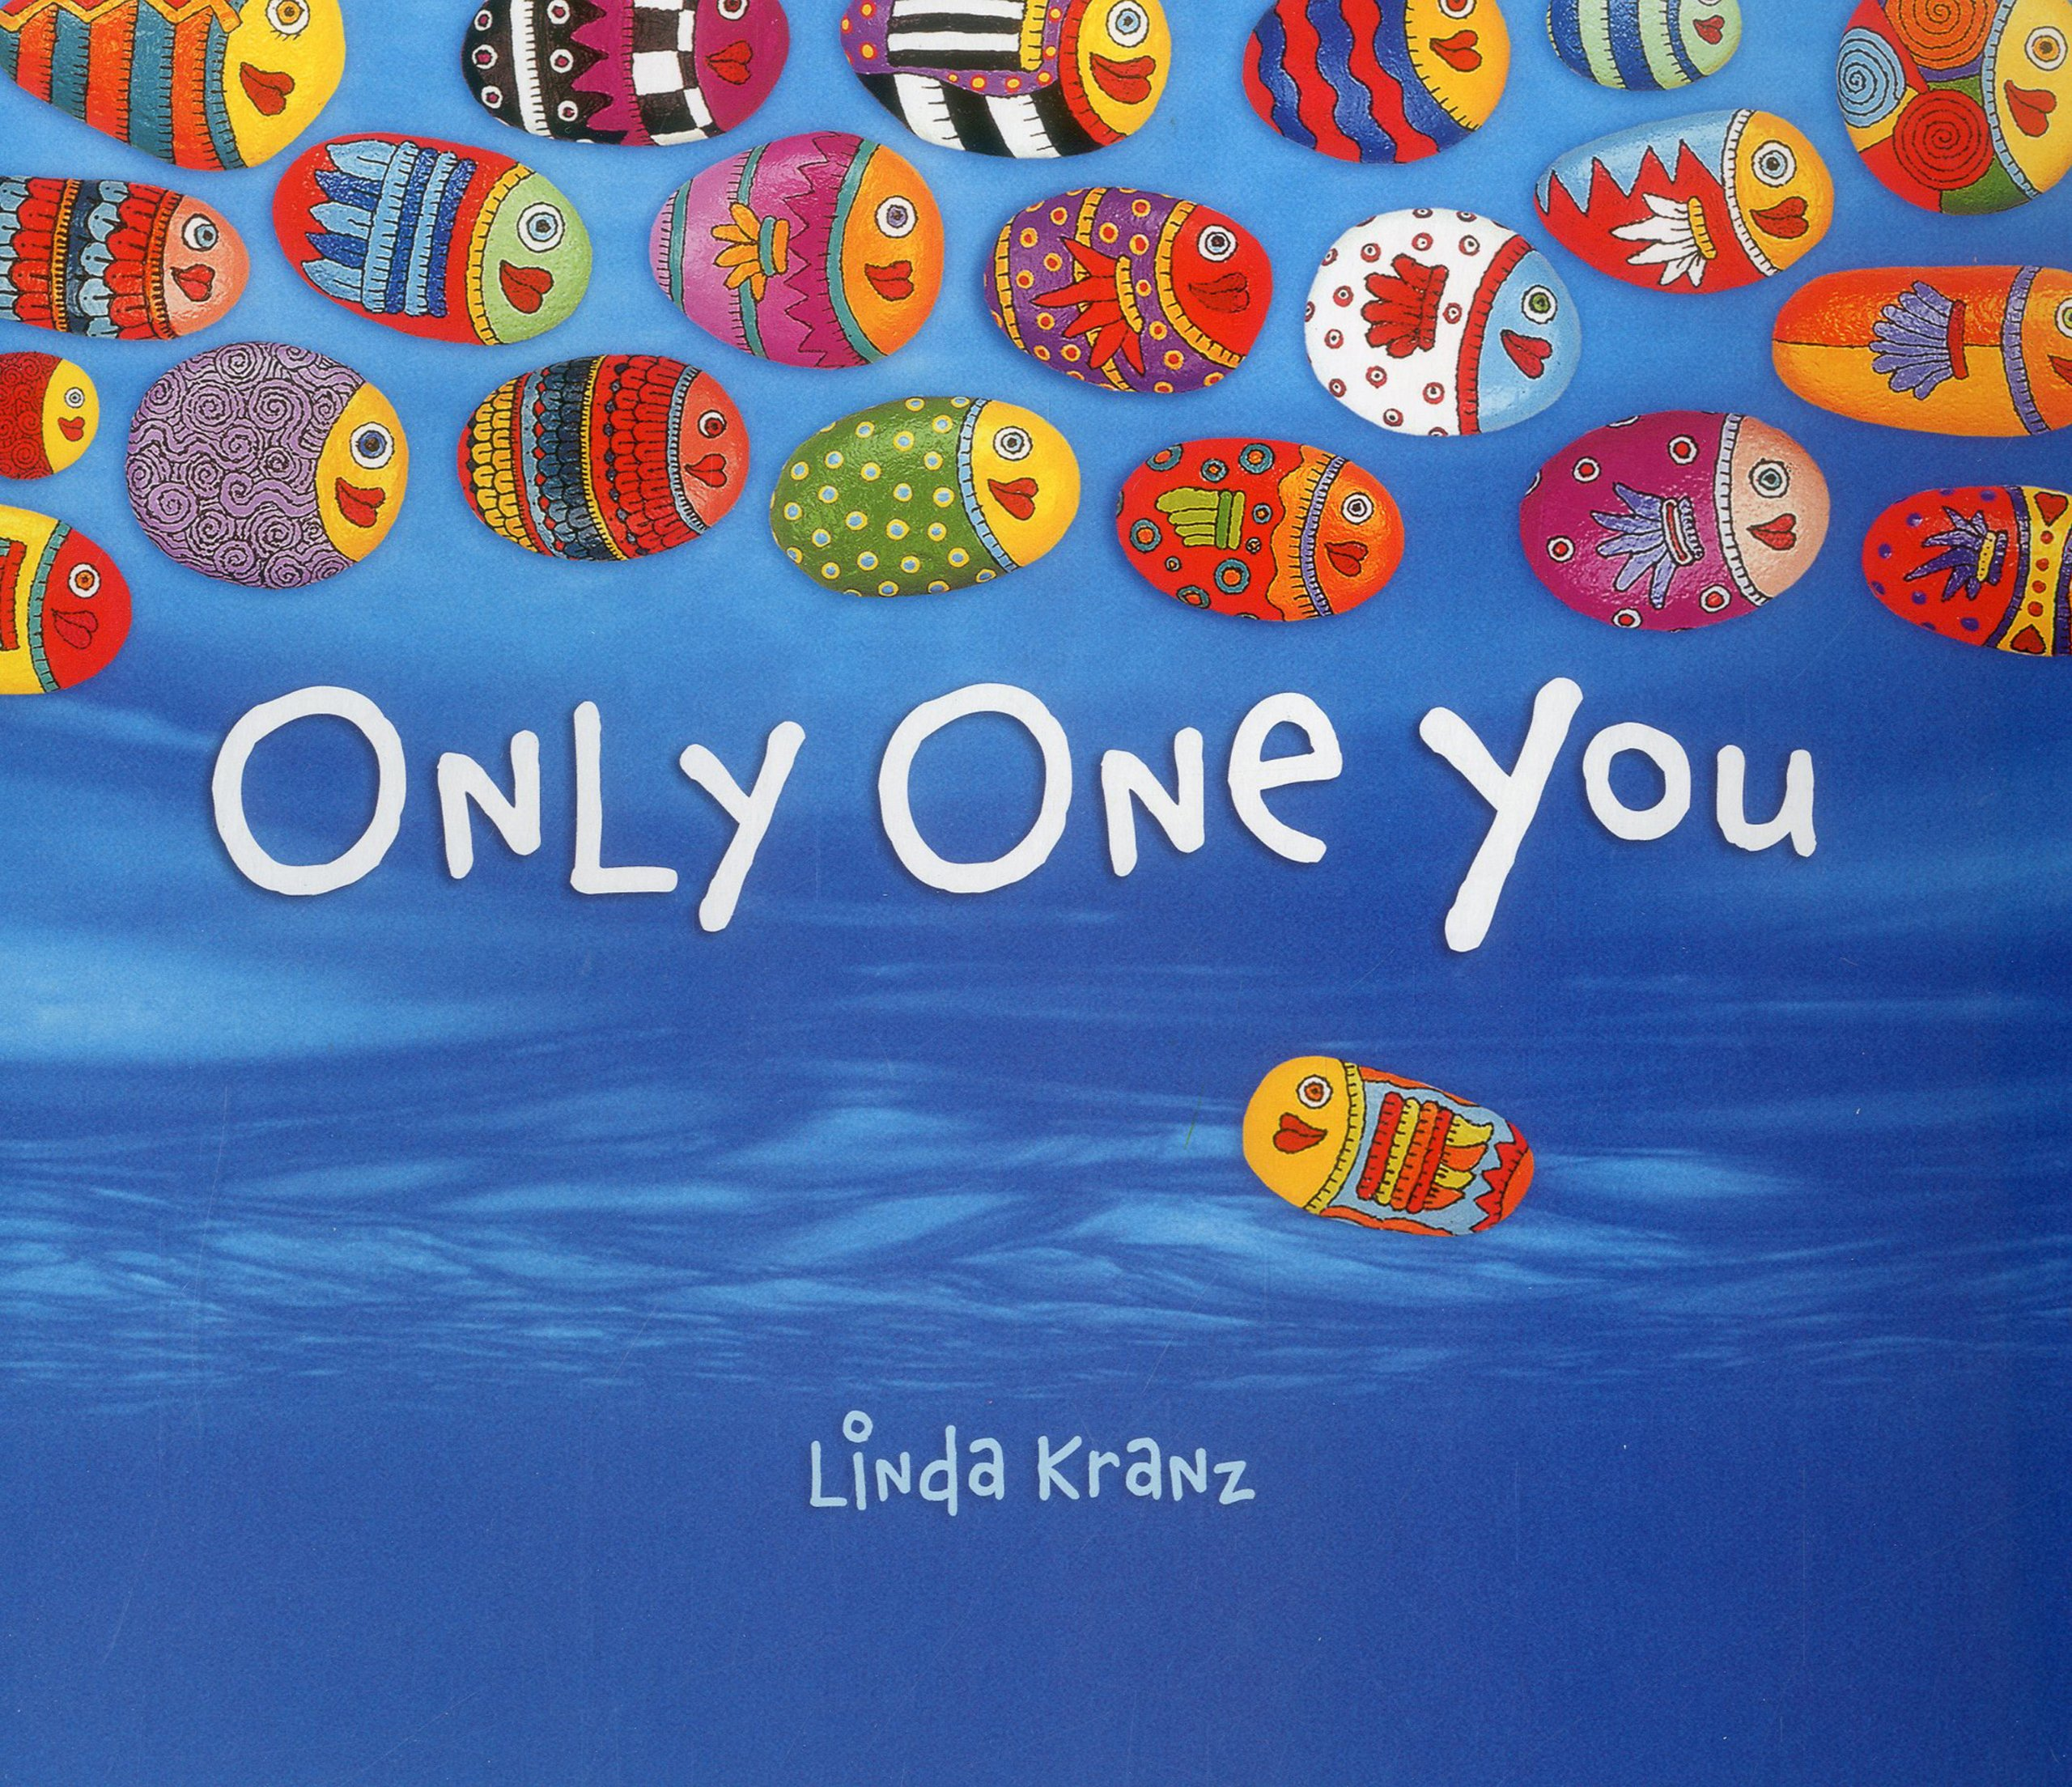 Only One You: Amazon.co.uk: Kranz, Linda: Books